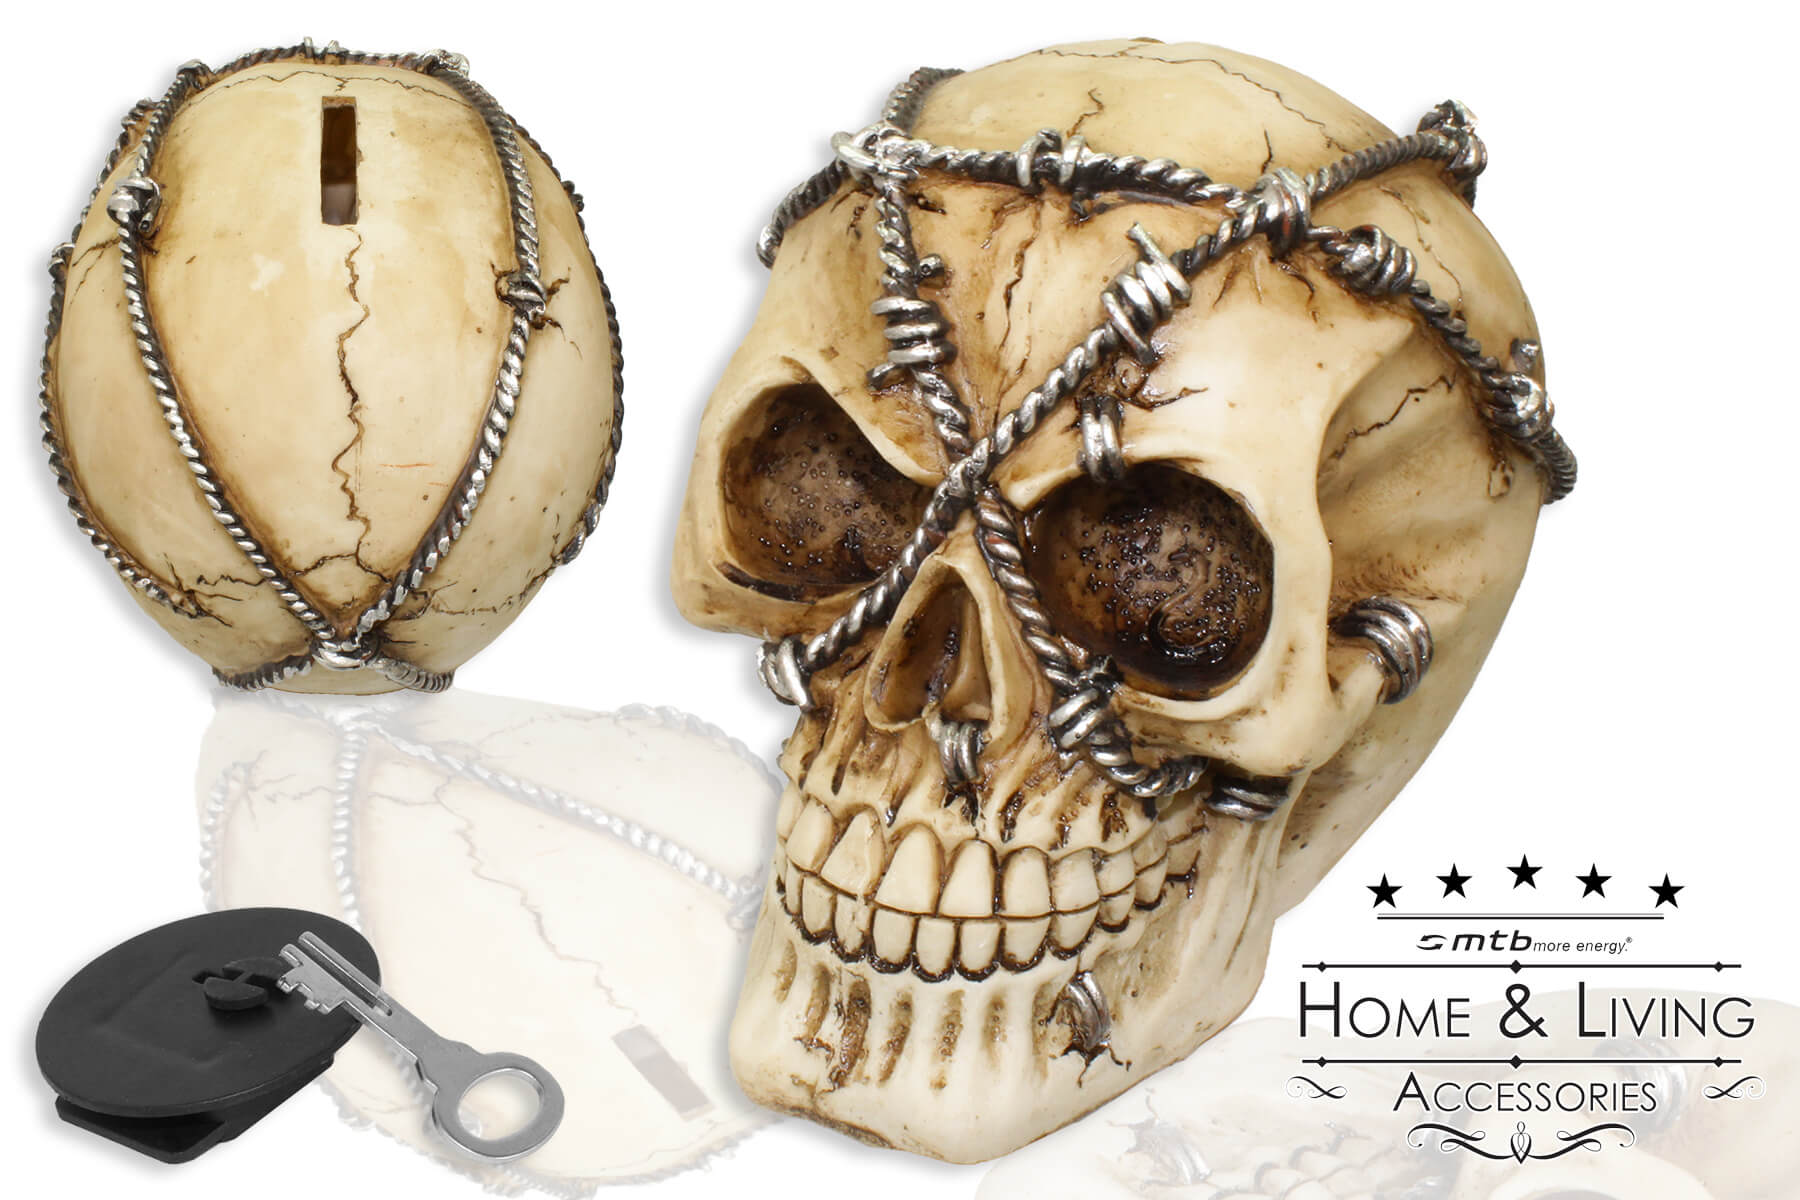 totenkopf spardose deko skull iron wire deko skull horror halloween draht ebay. Black Bedroom Furniture Sets. Home Design Ideas